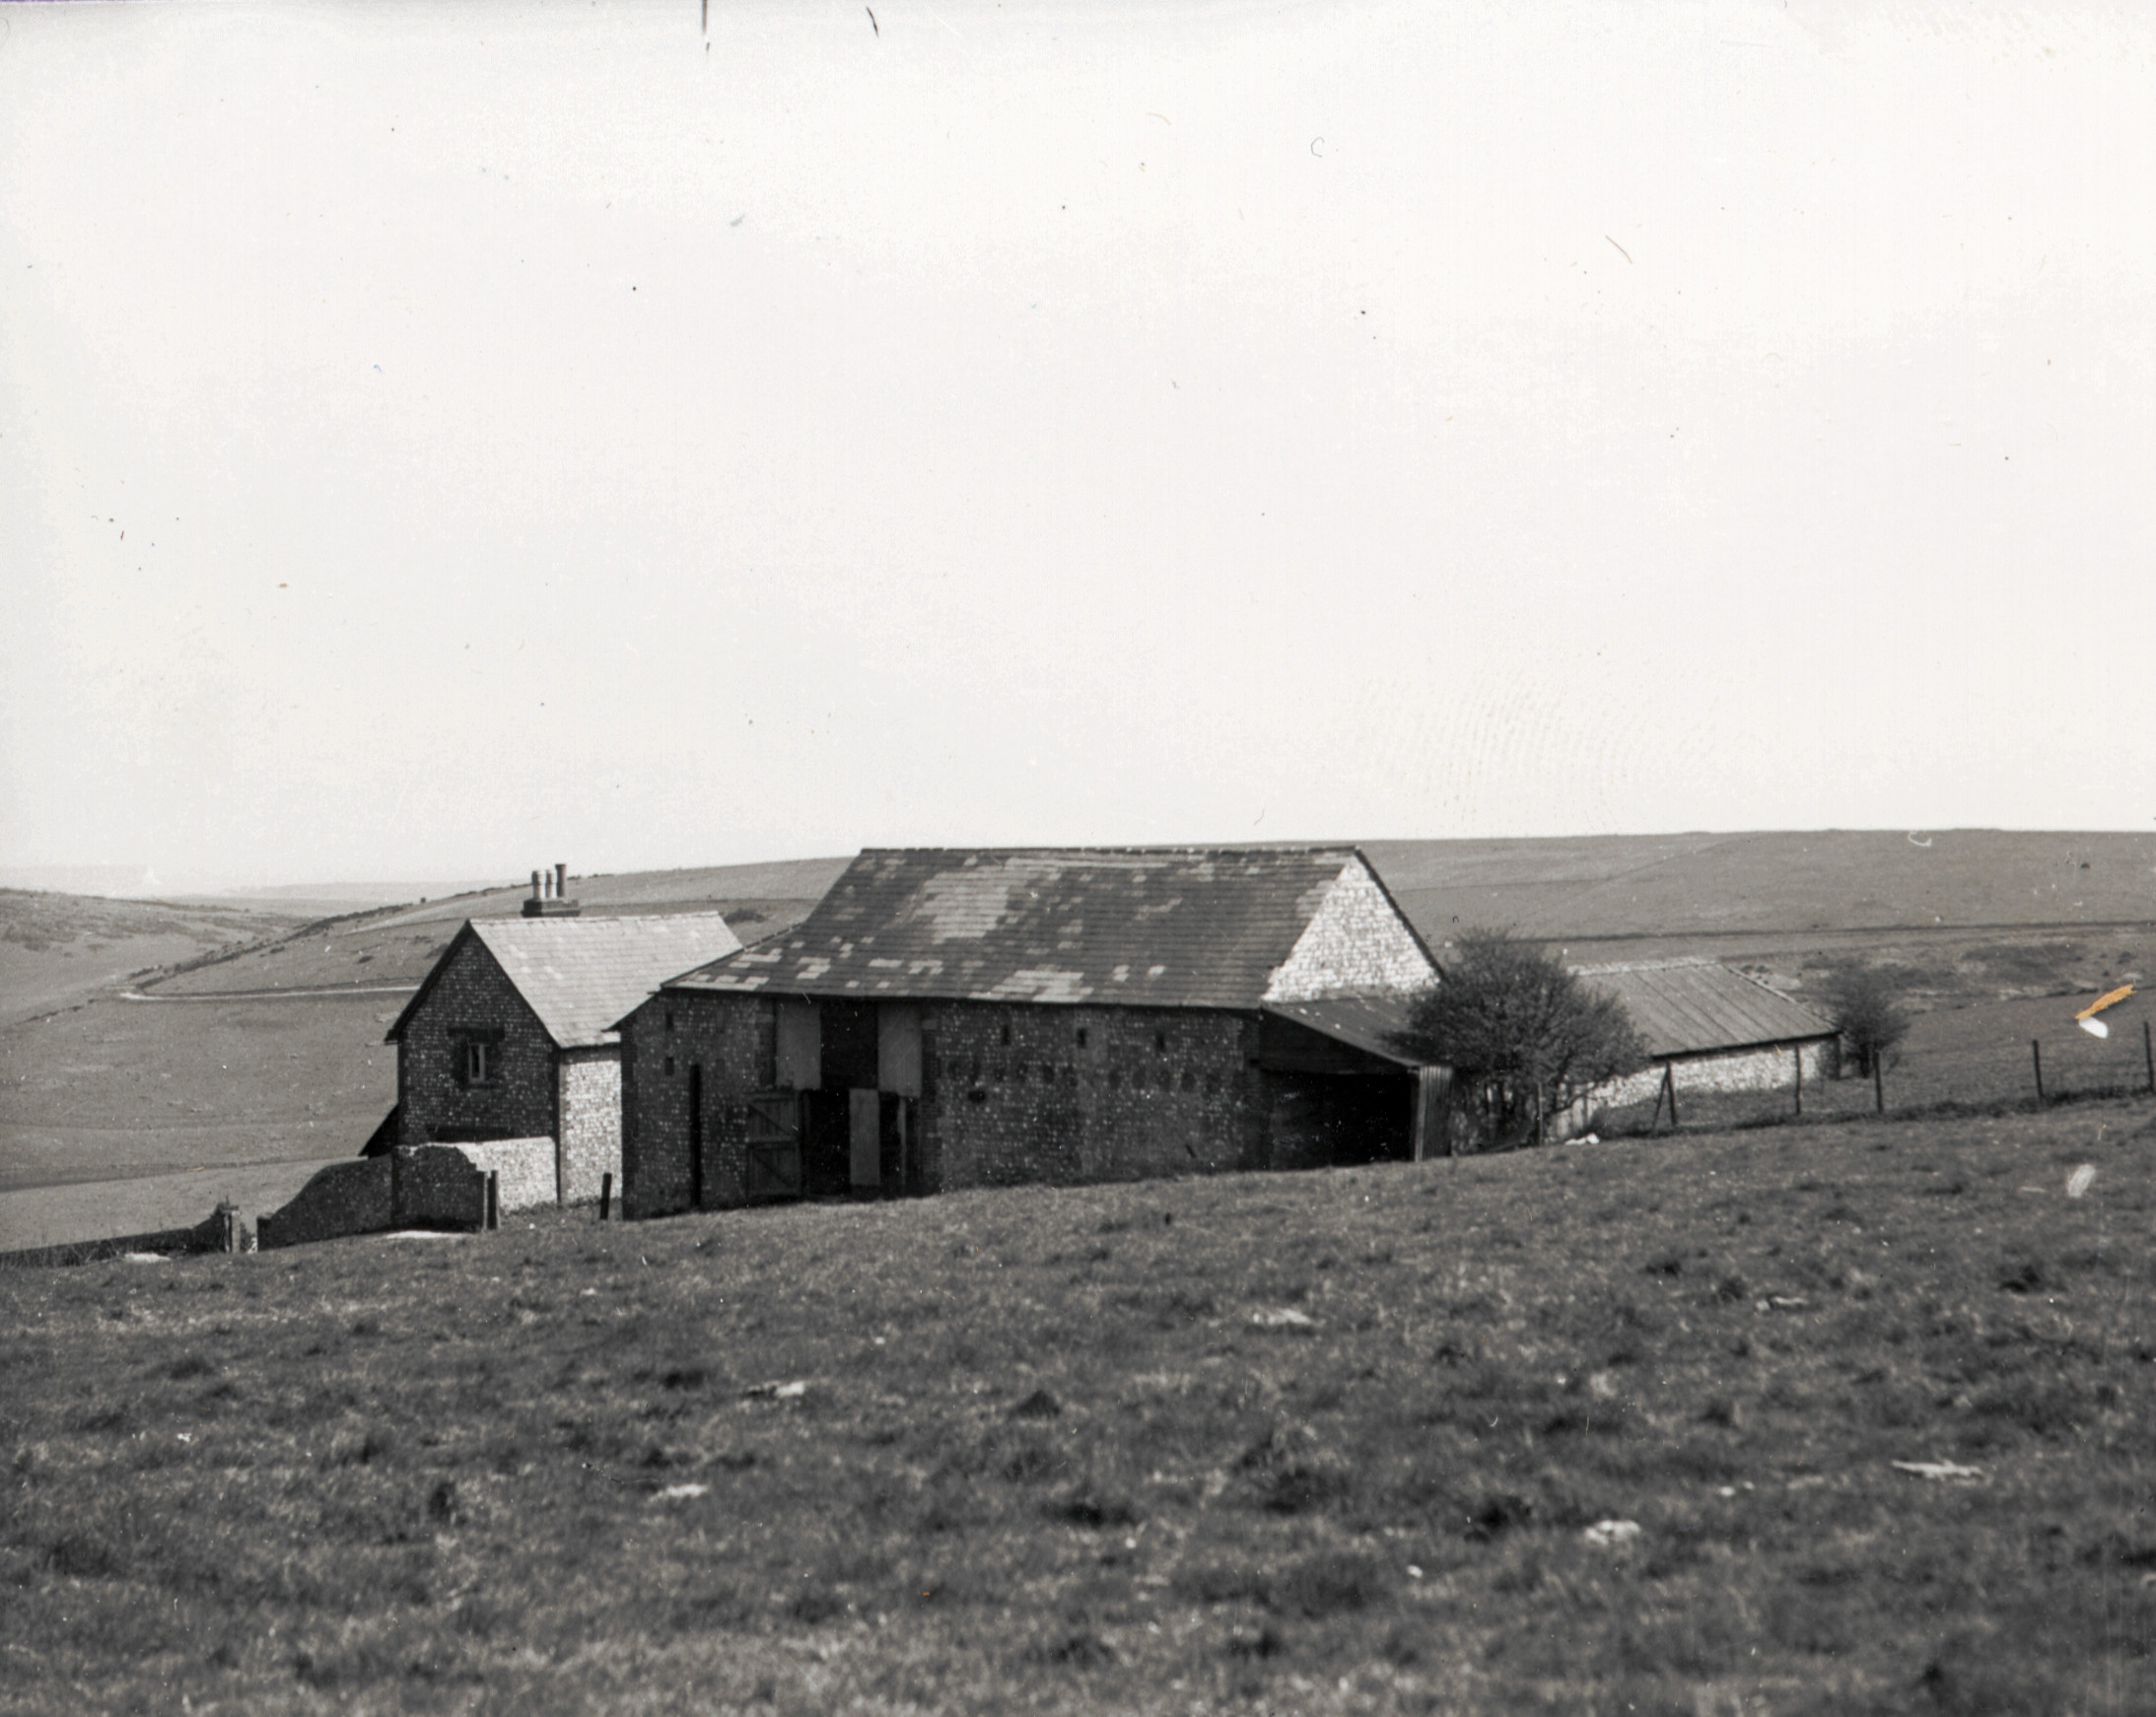 Newmarket Farm photo possibly taken in about 1924. From a collection of photos by Capt. Bertie Hubbard Maclaren. Brighton & Hove Royal Pavilion and Museums, ref. HA930078.